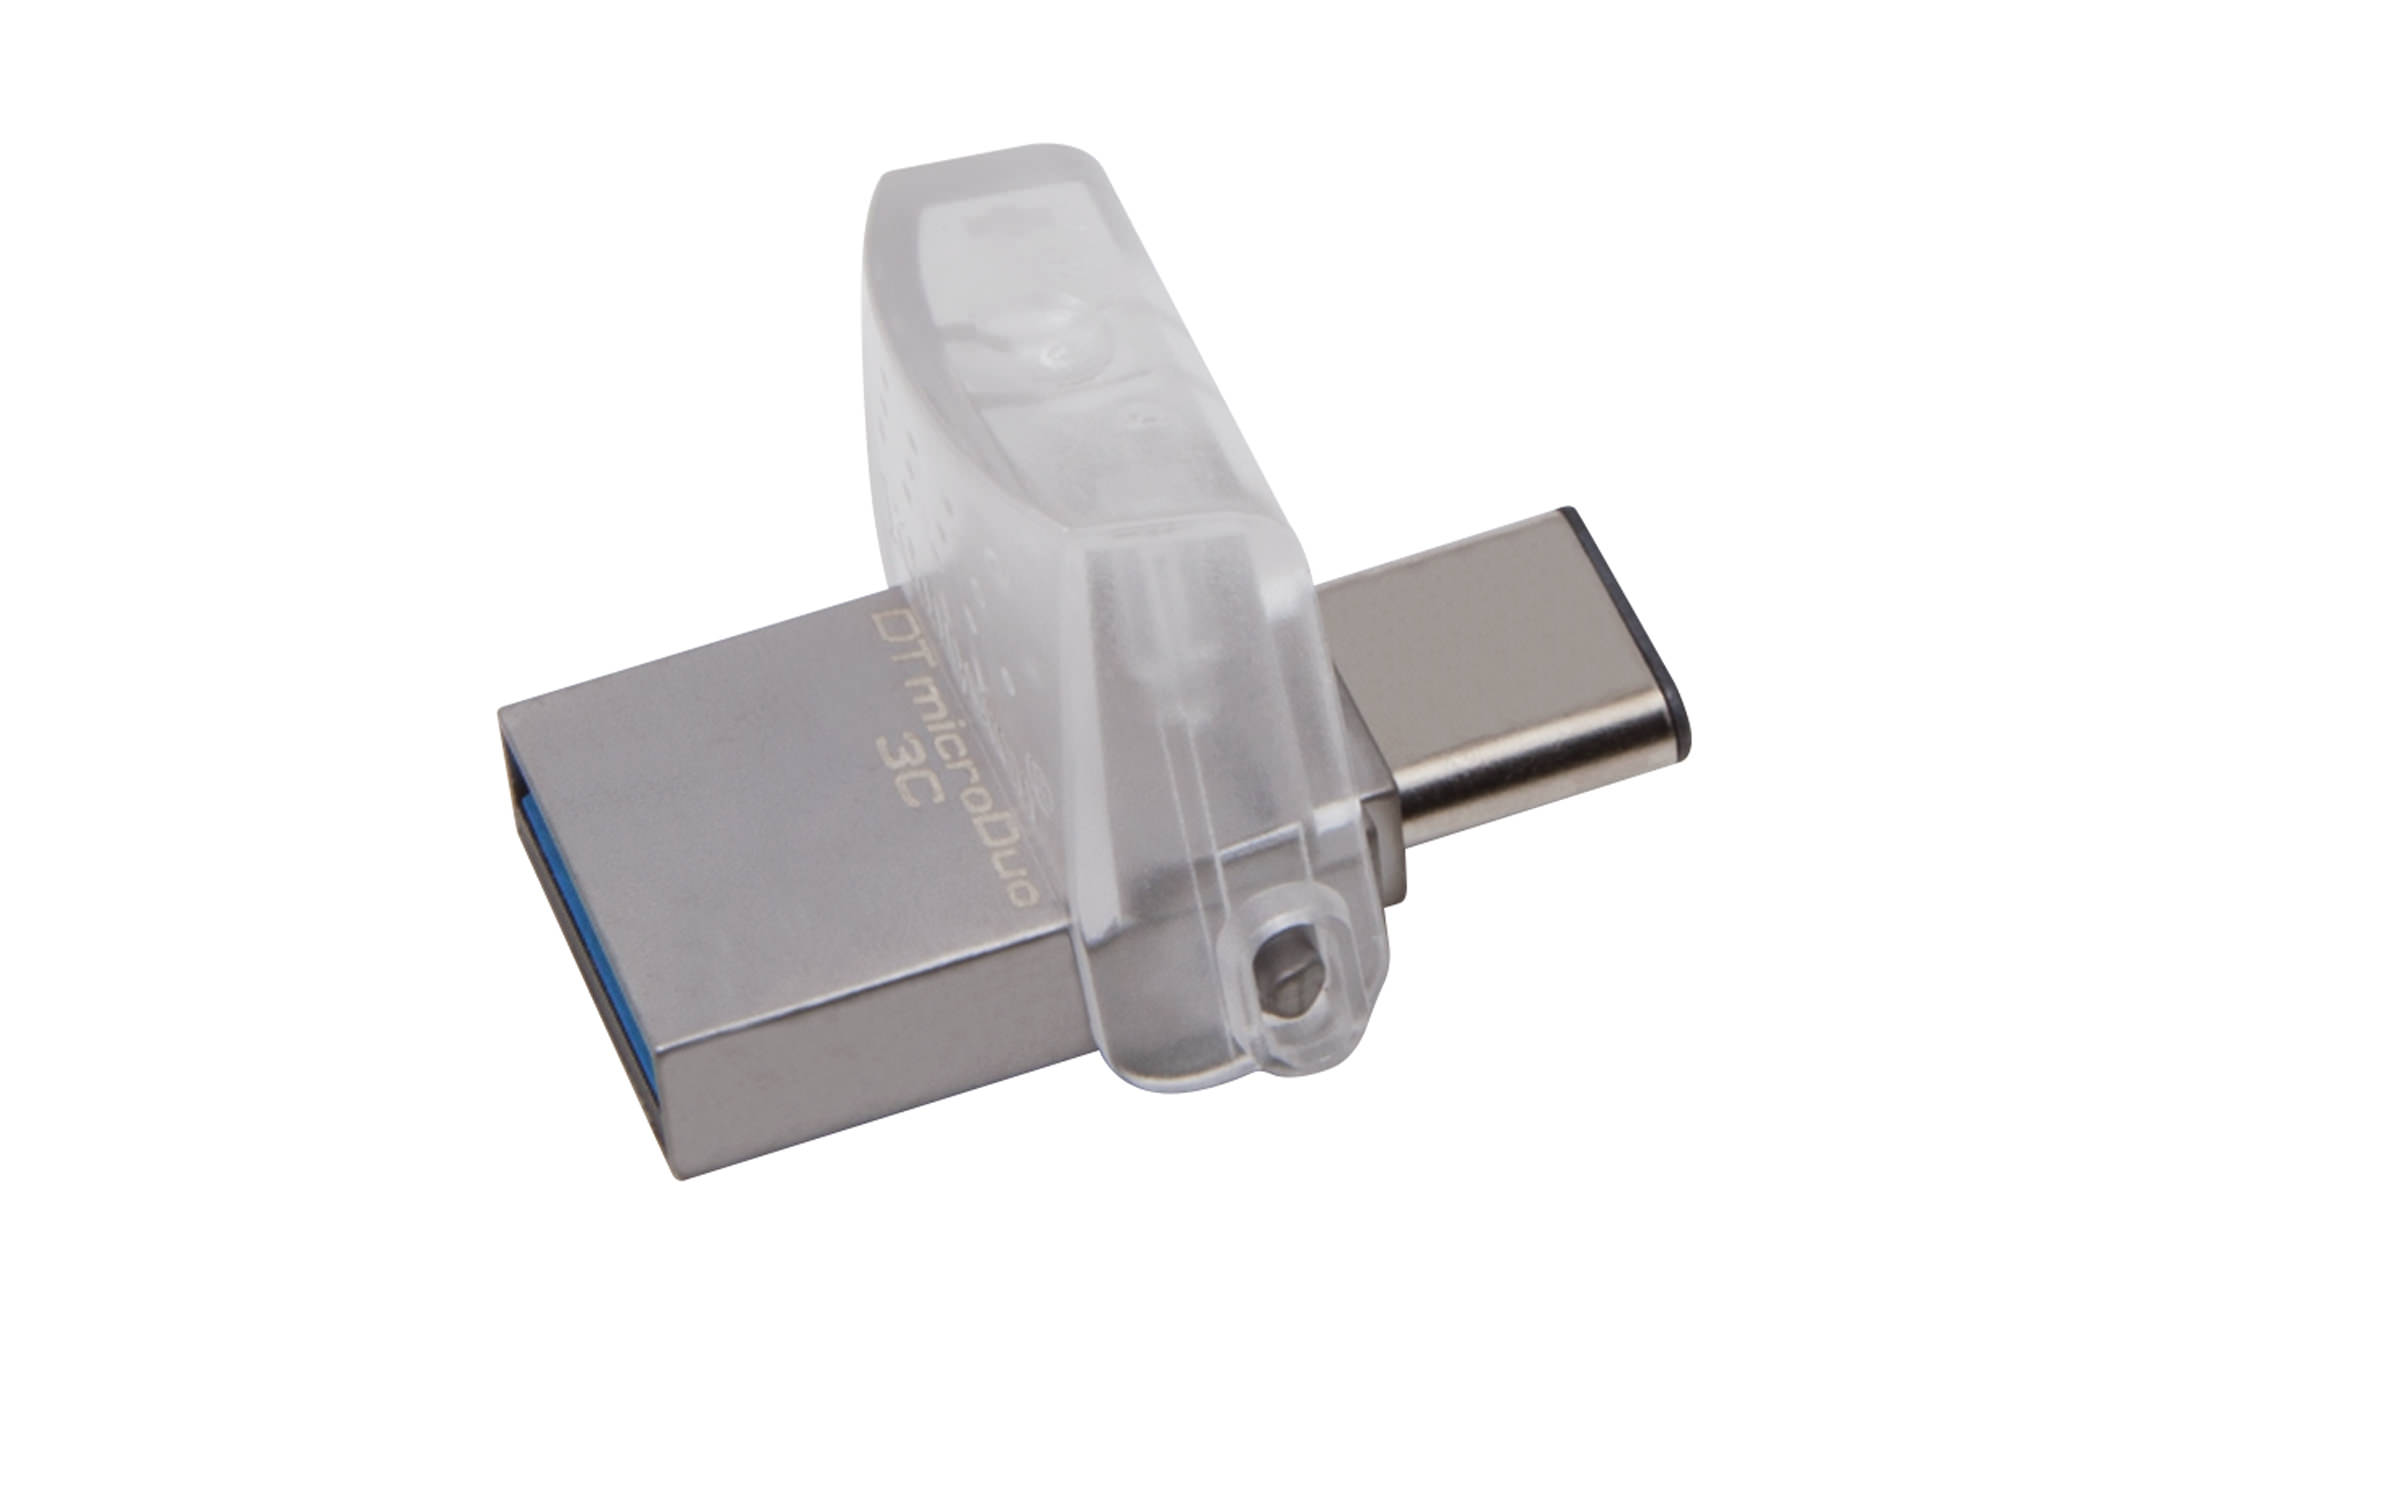 PEN DRIVE 64GB KINGSTON USB 3.1+MICRODUO USB C